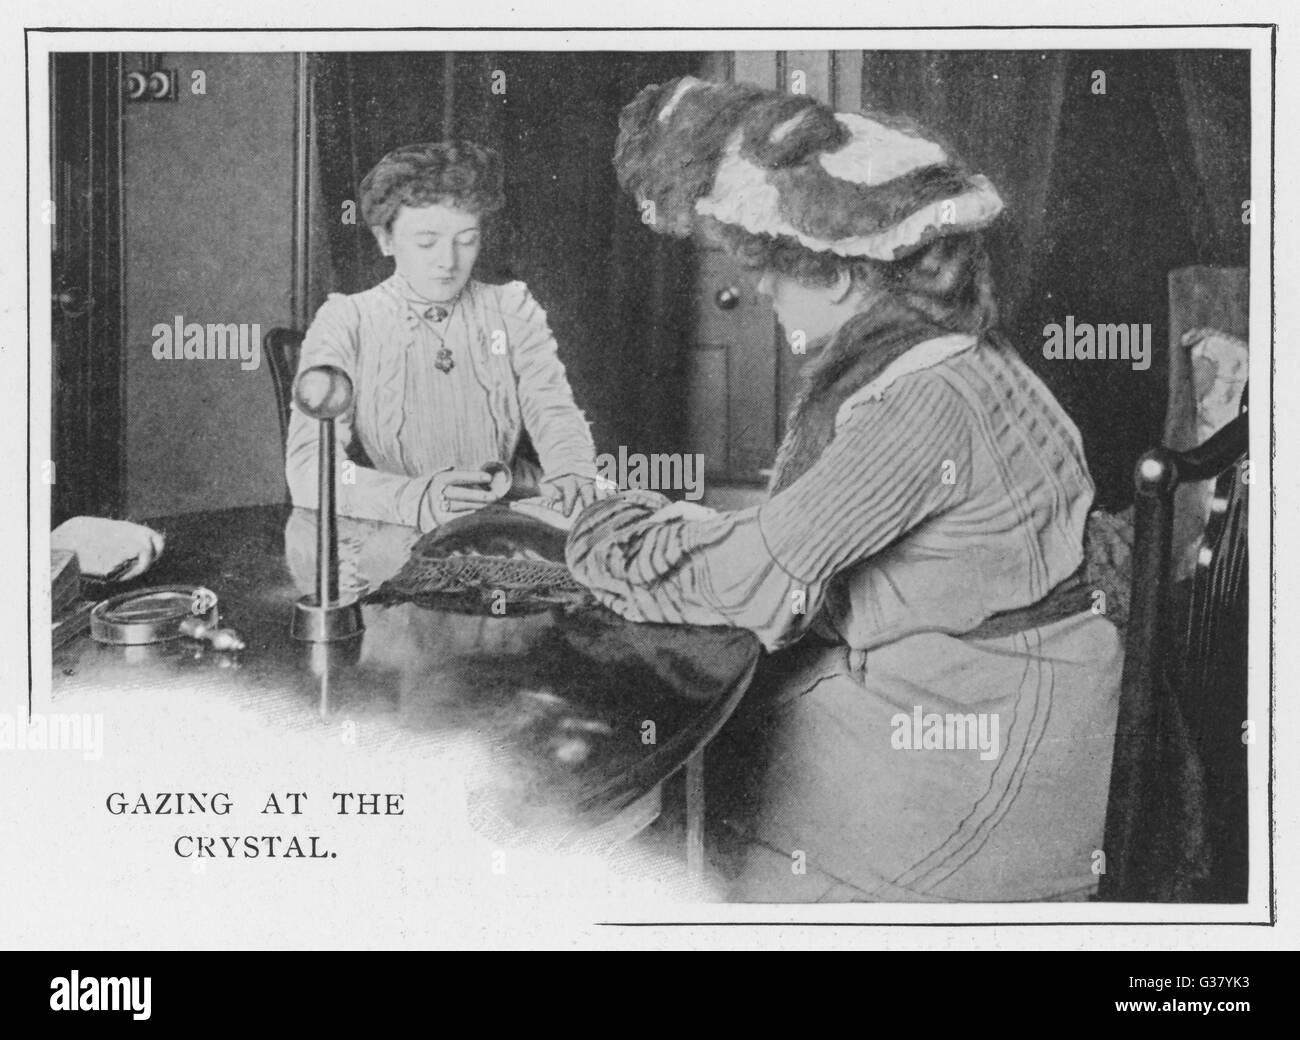 Gazing at the crystal - a client consults a London  fortune teller        Date: 1900 Stock Photo